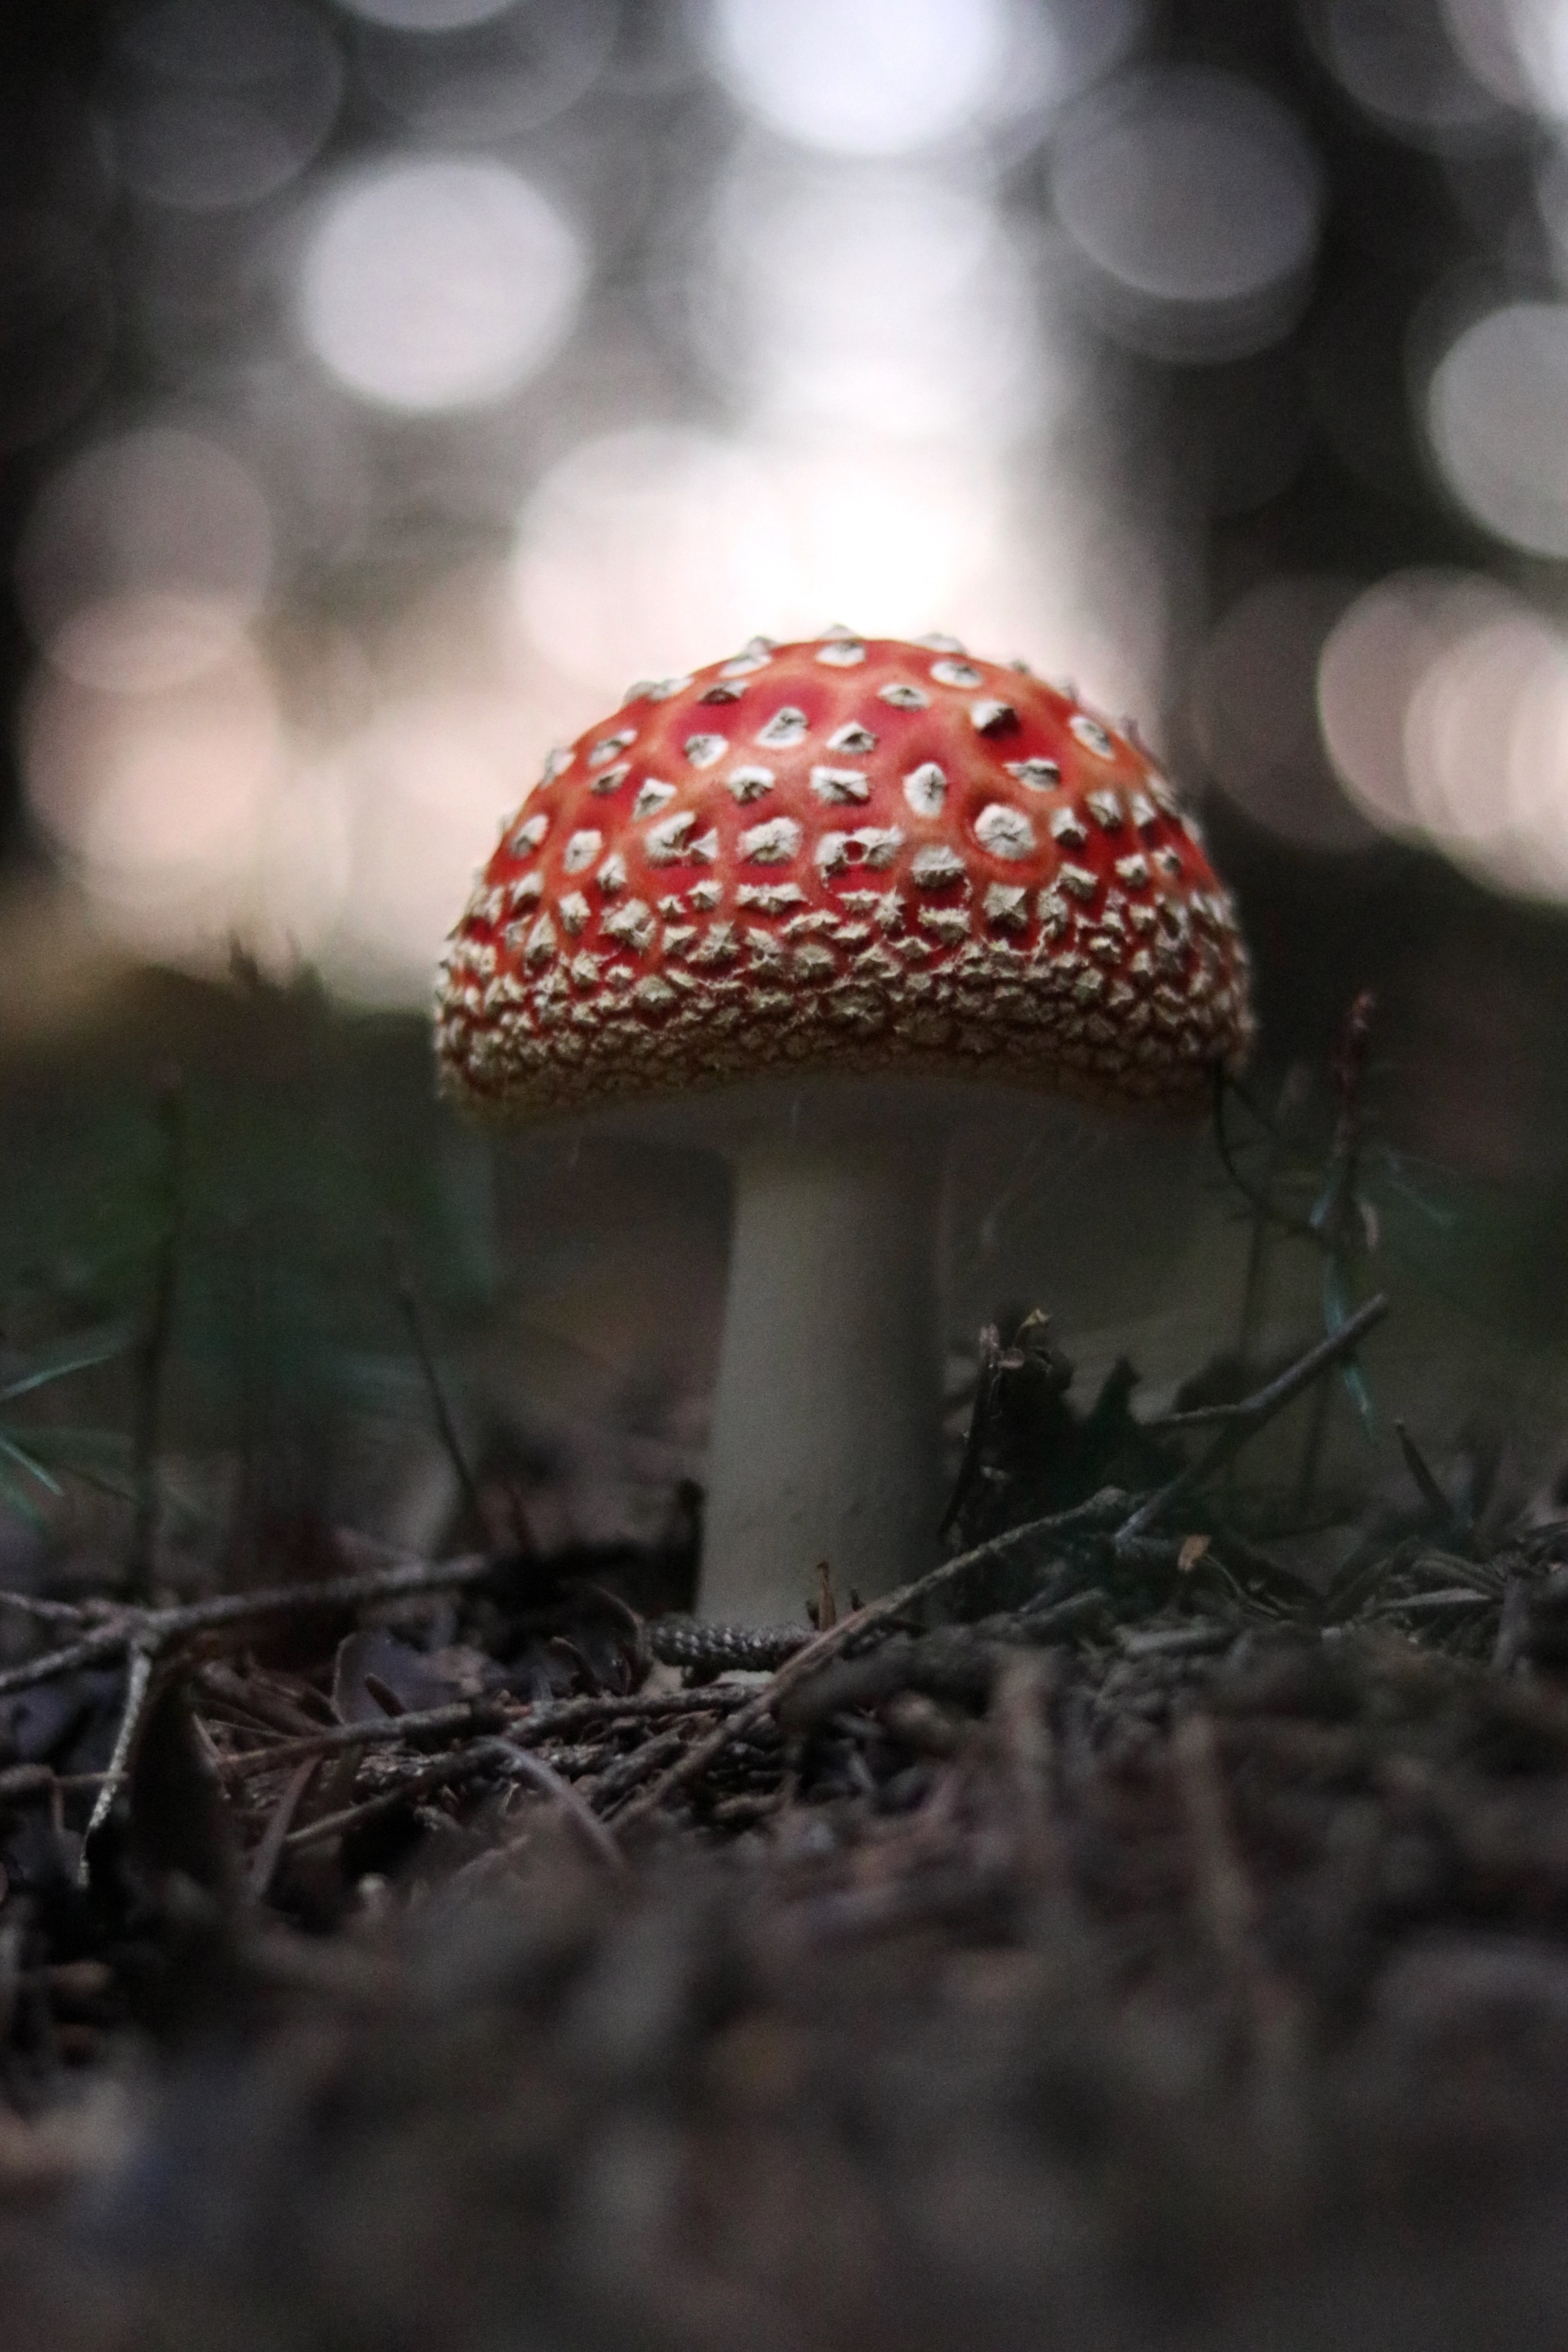 bokeh photography of red mushroom